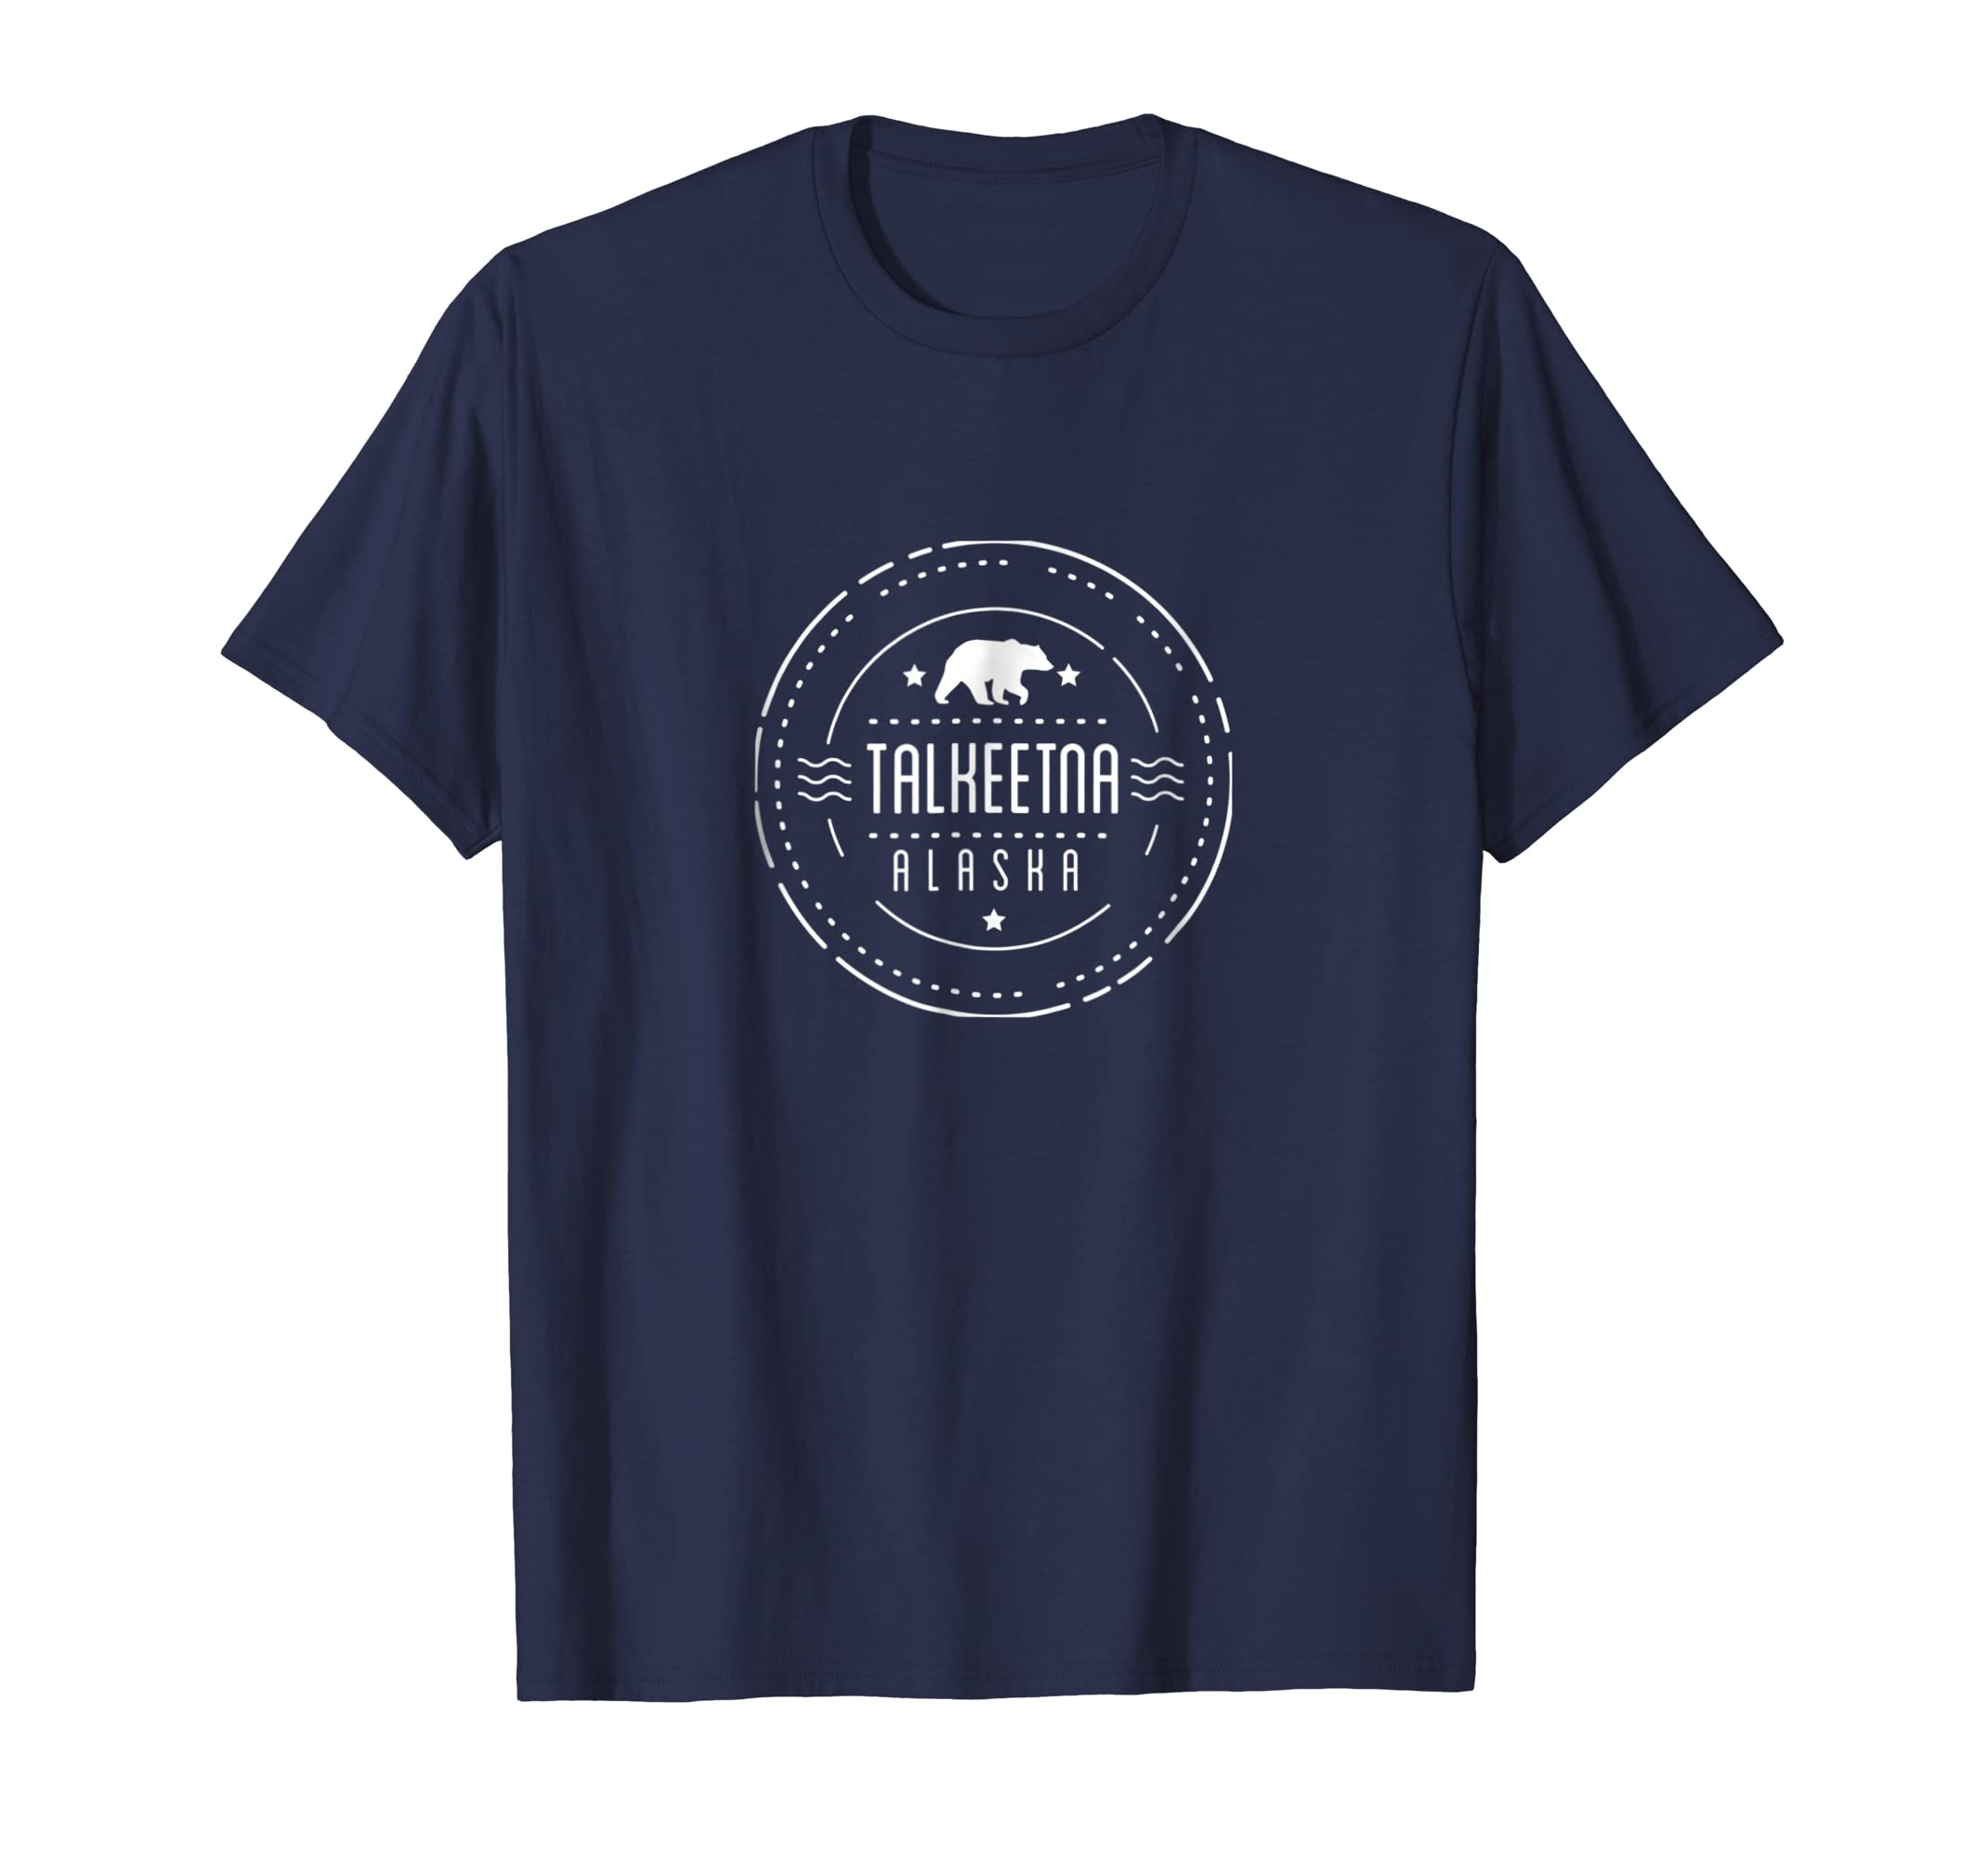 Talkeetna Alaska Shirt with Bear Tshirt-AZP